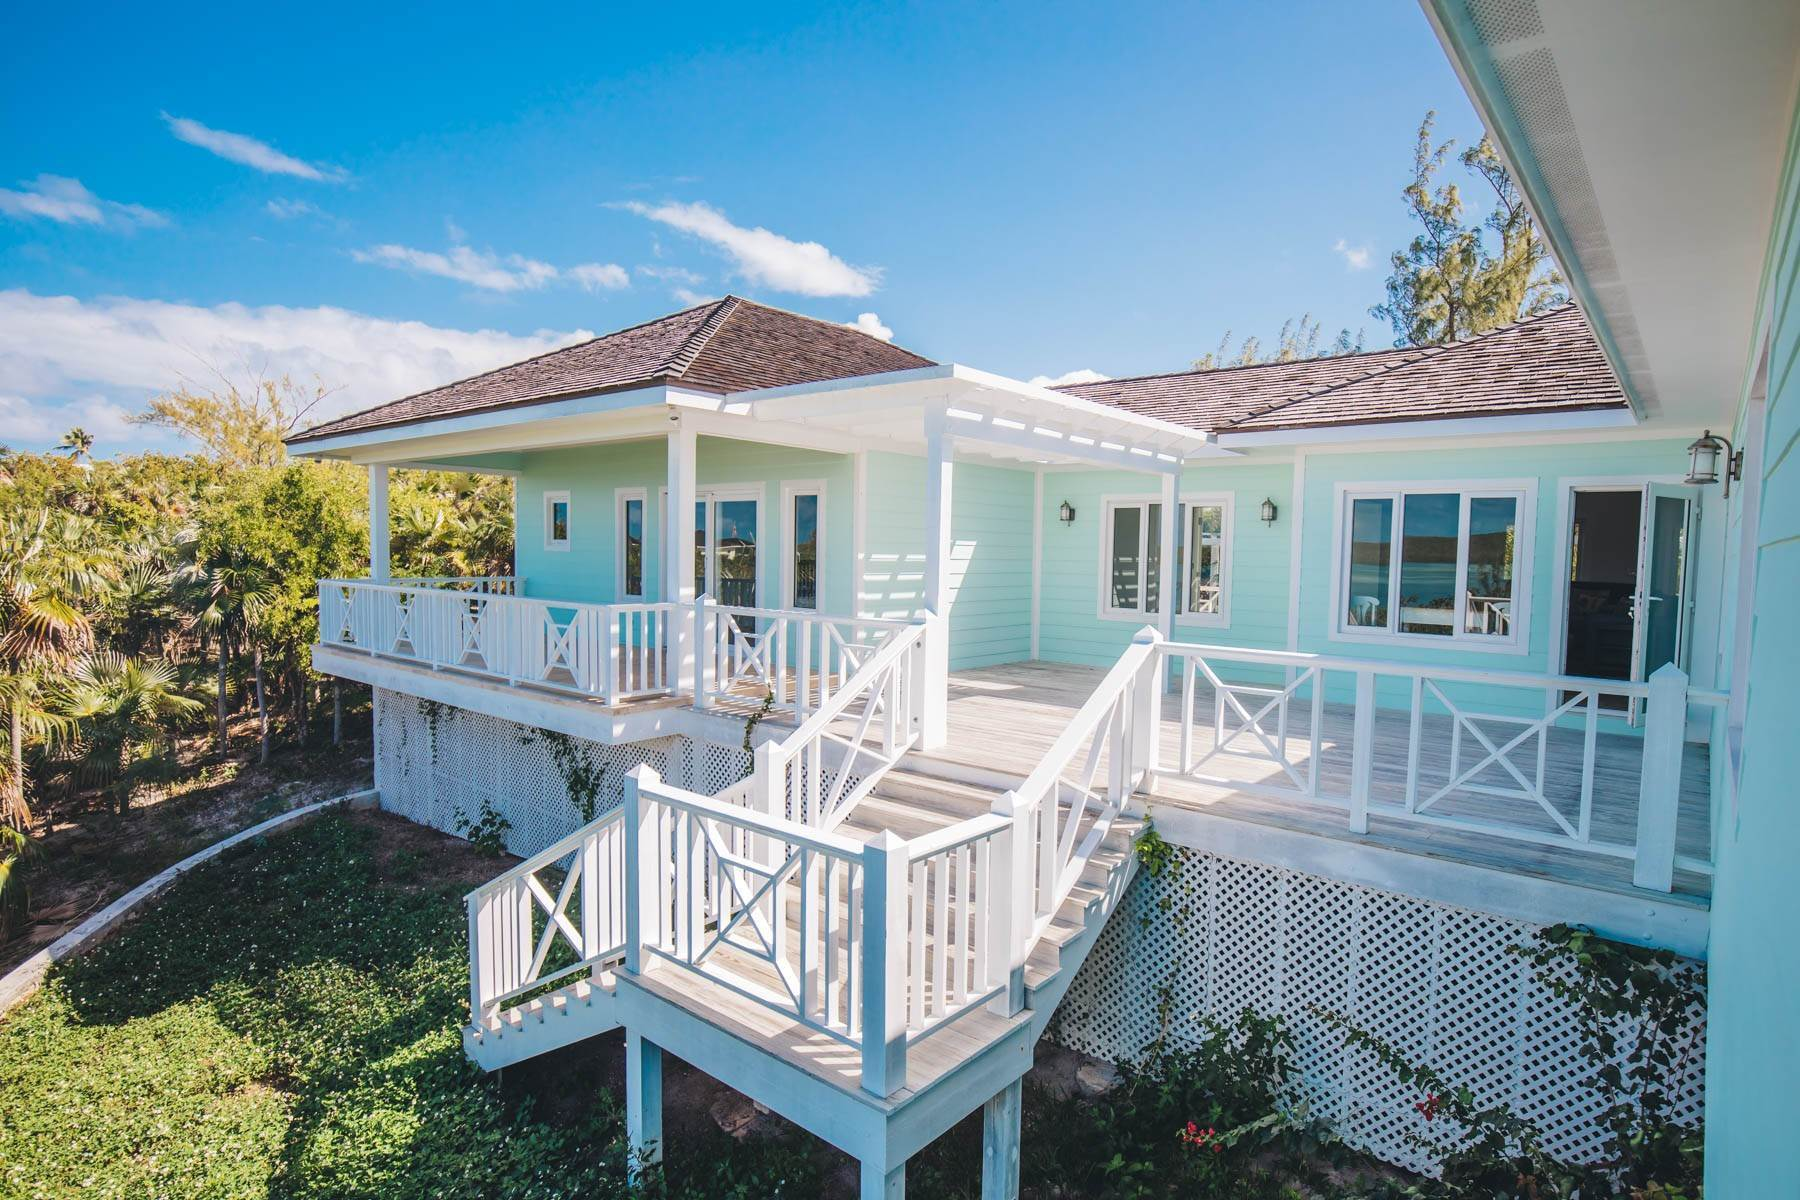 19. Single Family Homes for Sale at Savannah Sound Home - Windermere Island - MLS 44478 Windermere Island, Eleuthera, Bahamas